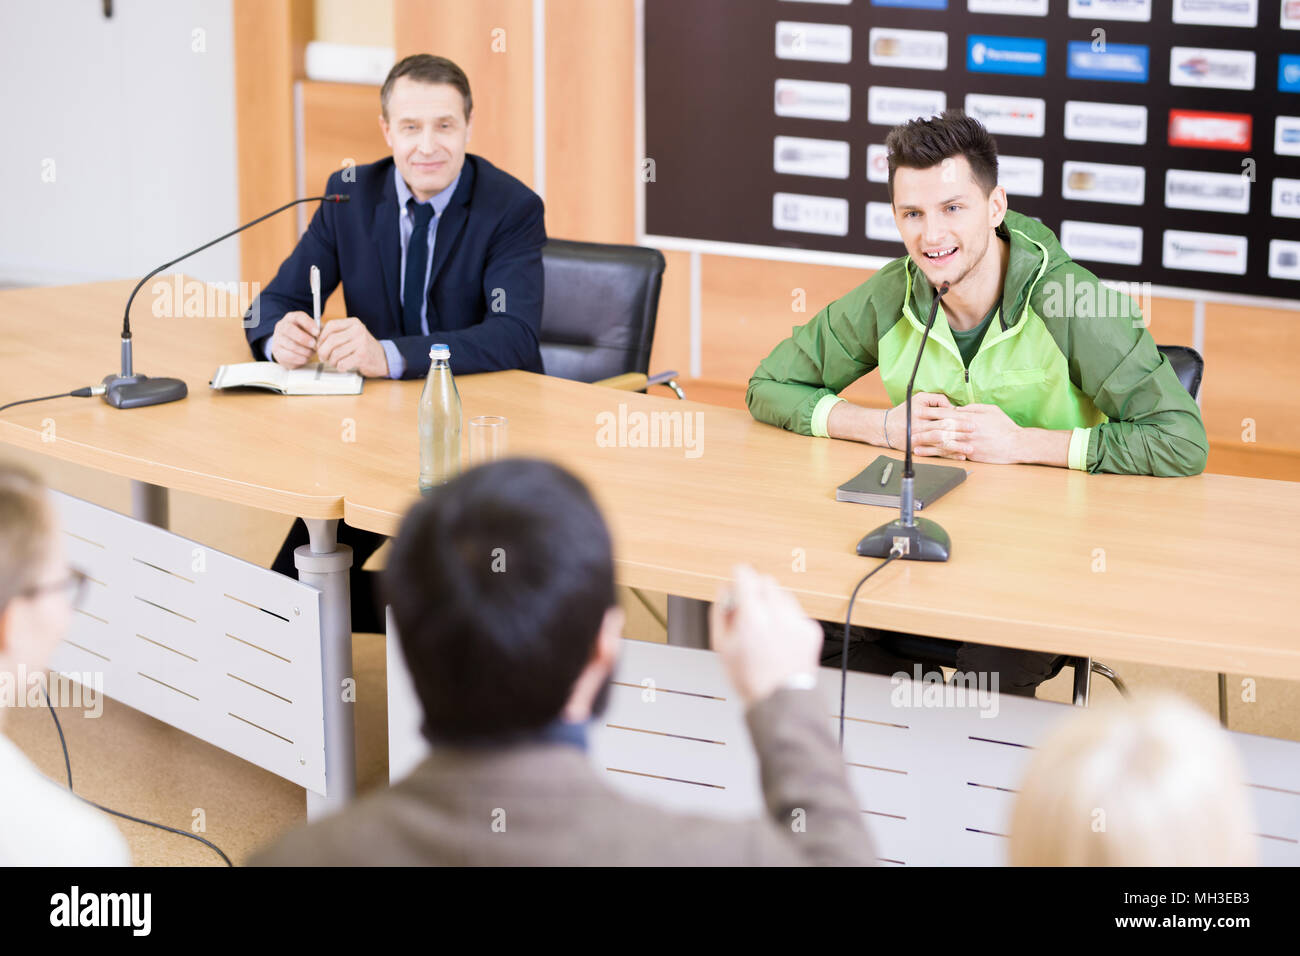 Sportsman Answering Questions at Press Conference - Stock Image